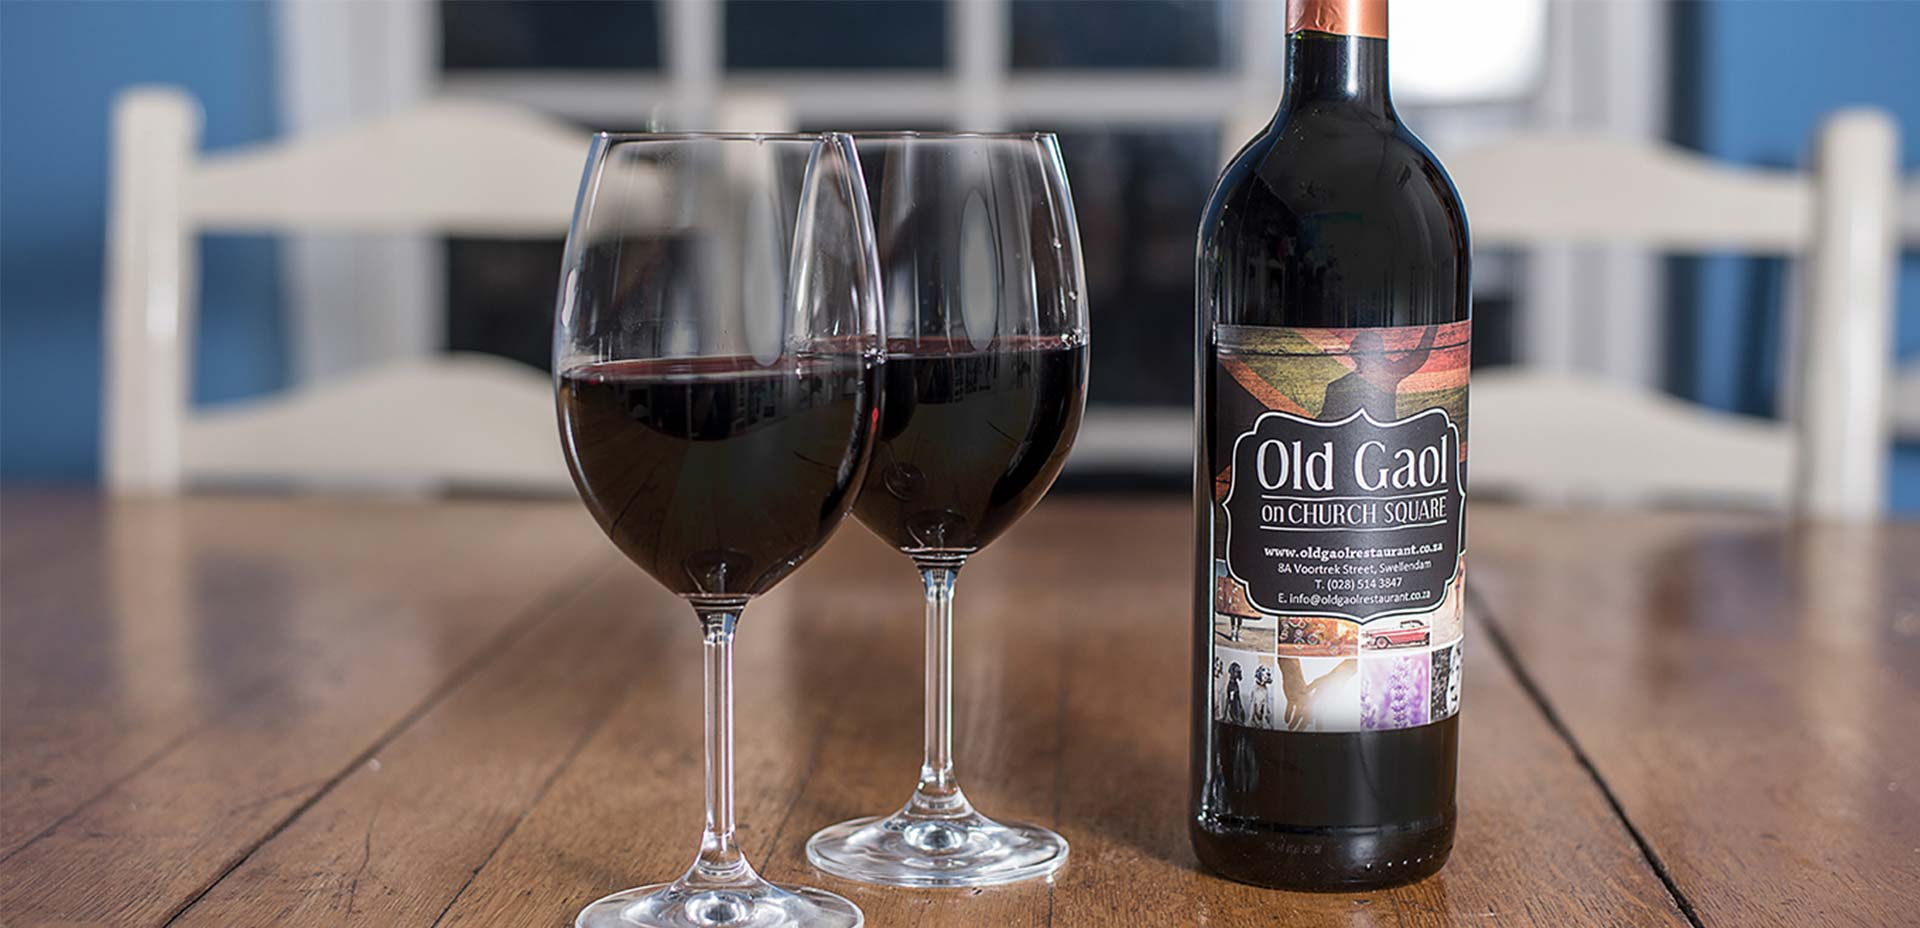 Old Gaol Red House Wine